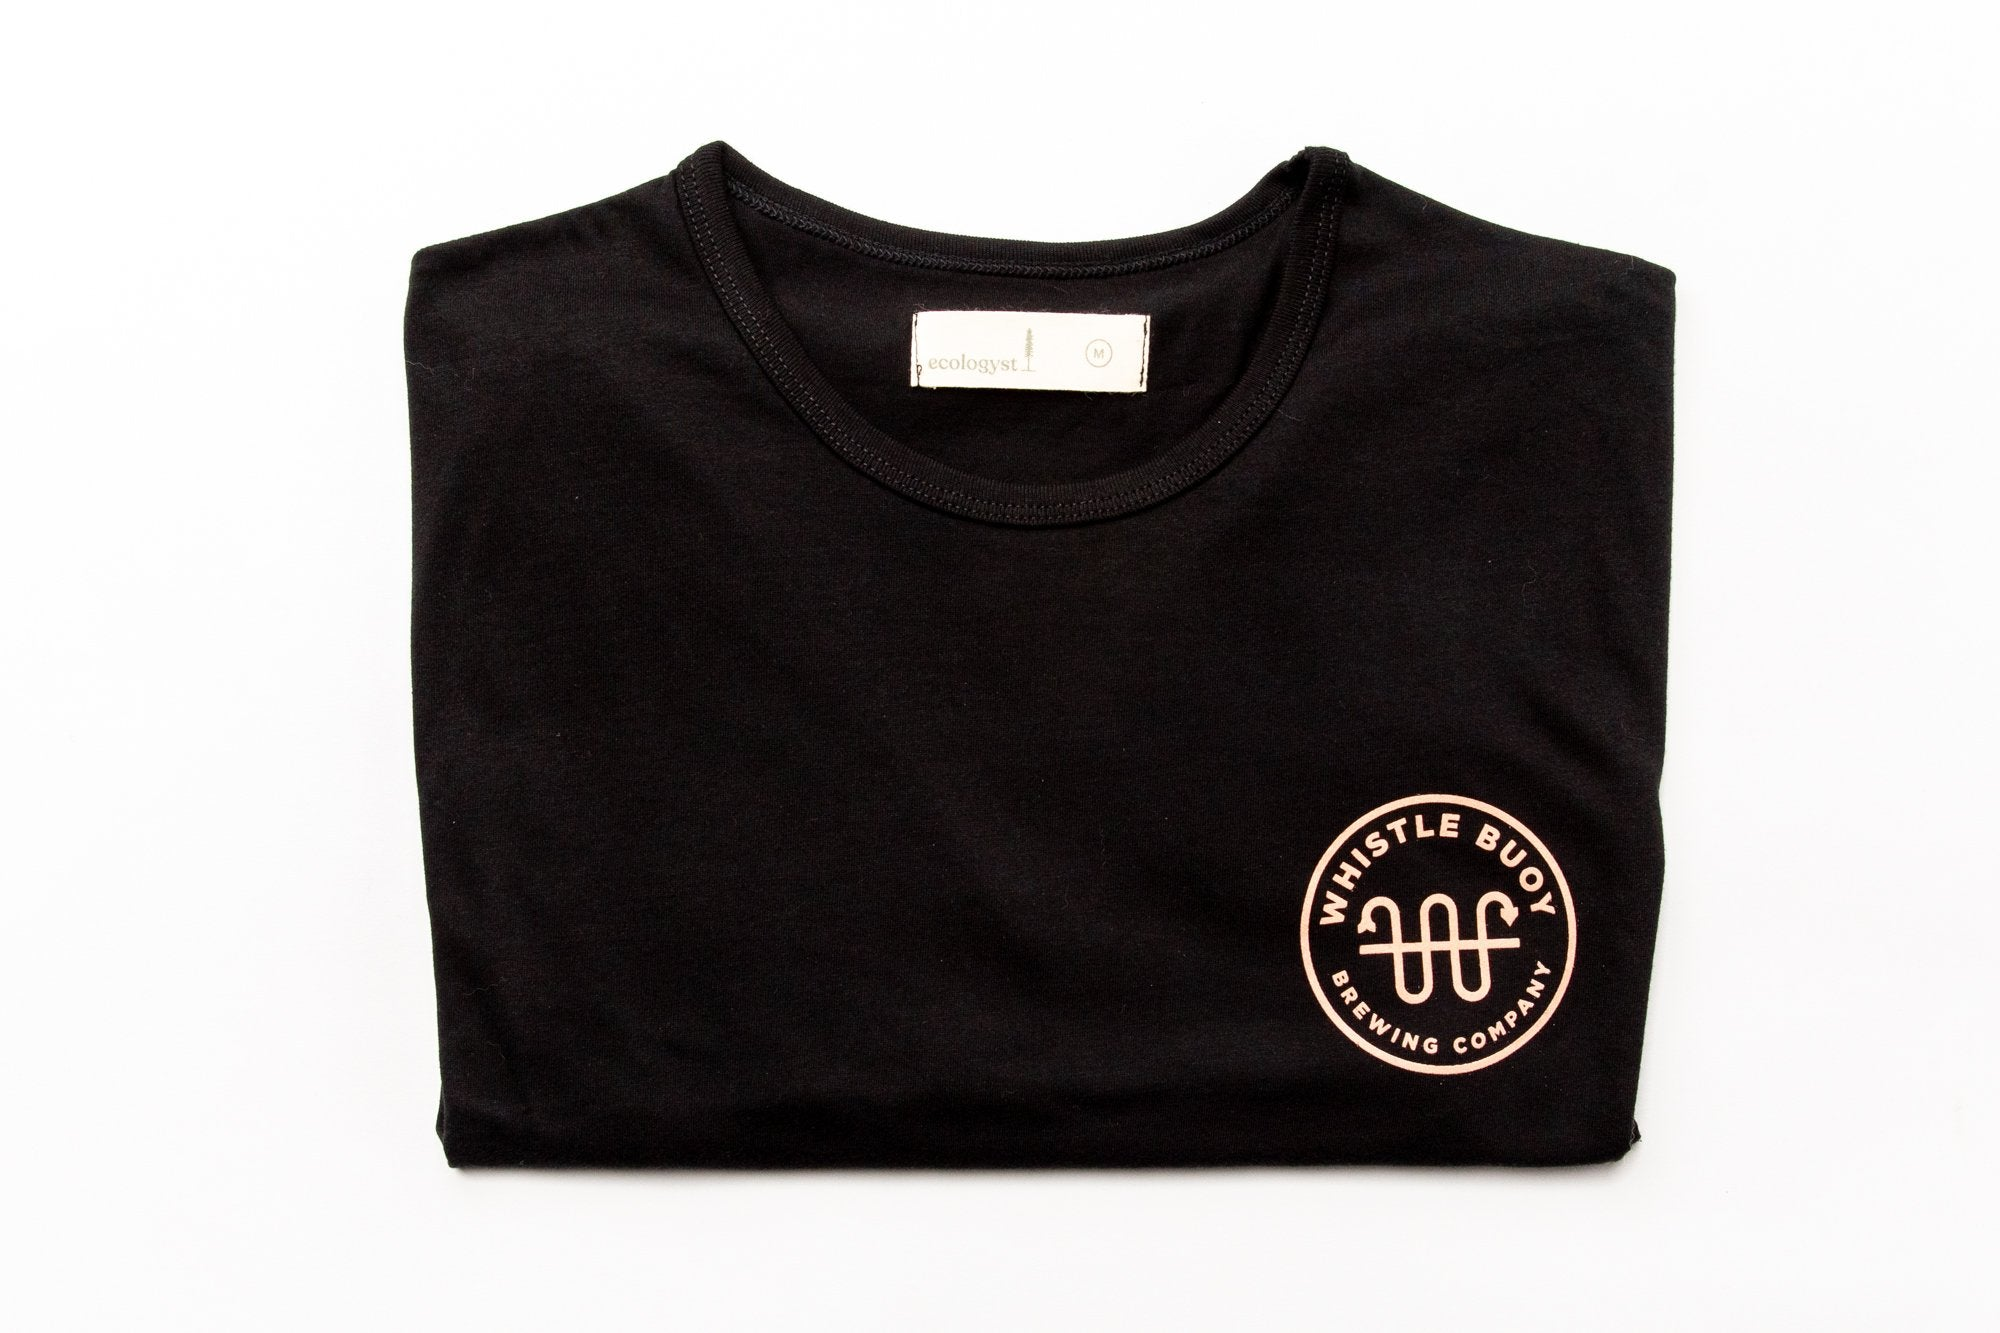 Whistle Buoy Black Emblem T w/ peach logo - studio shot